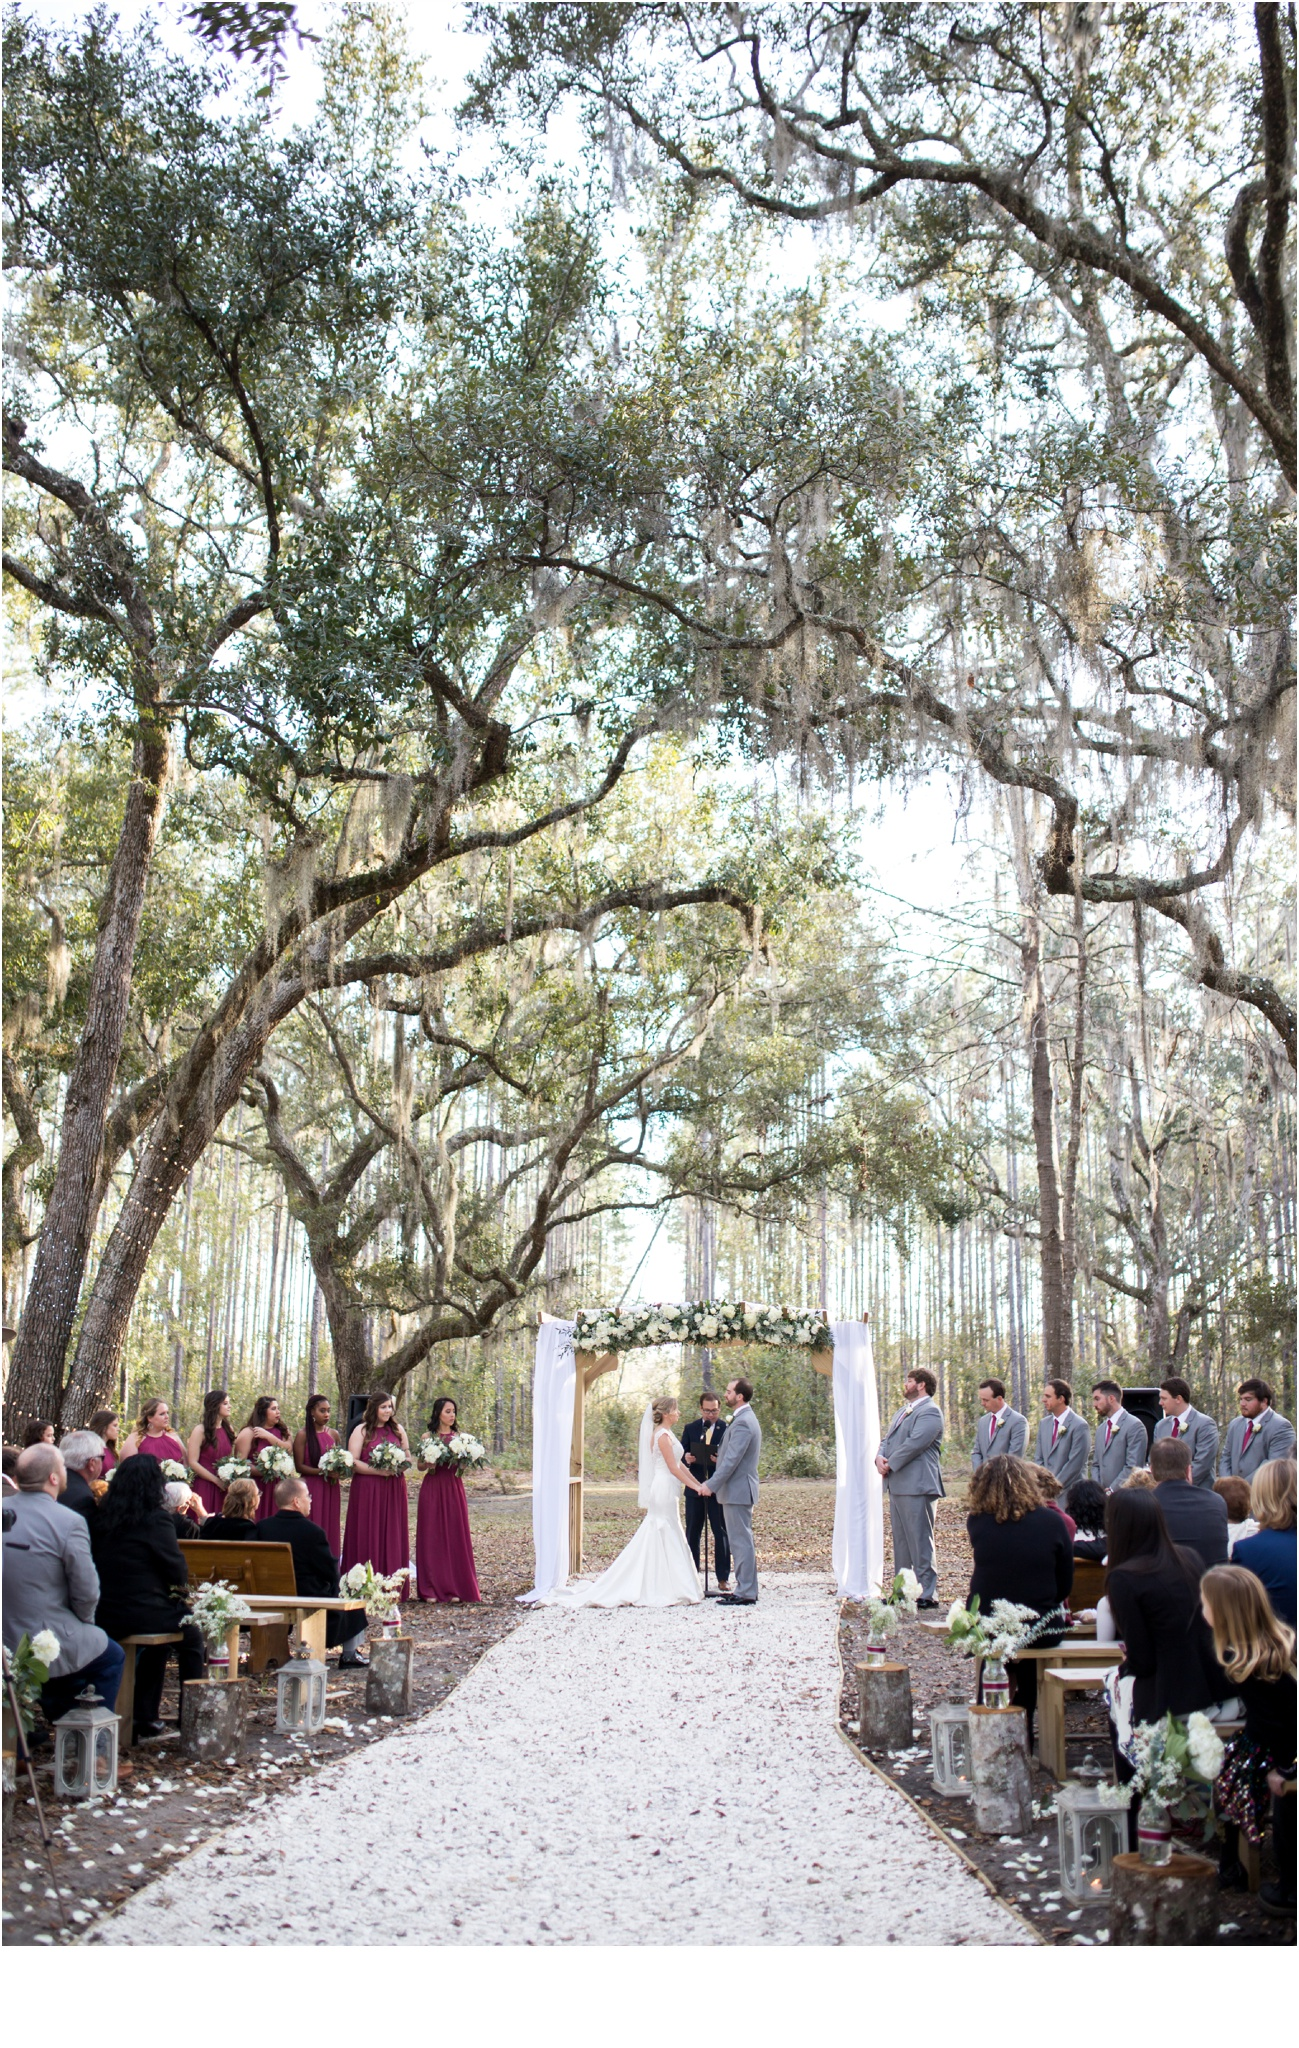 Rainey_Gregg_Photography_St._Simons_Island_Georgia_California_Wedding_Portrait_Photography_0532.jpg